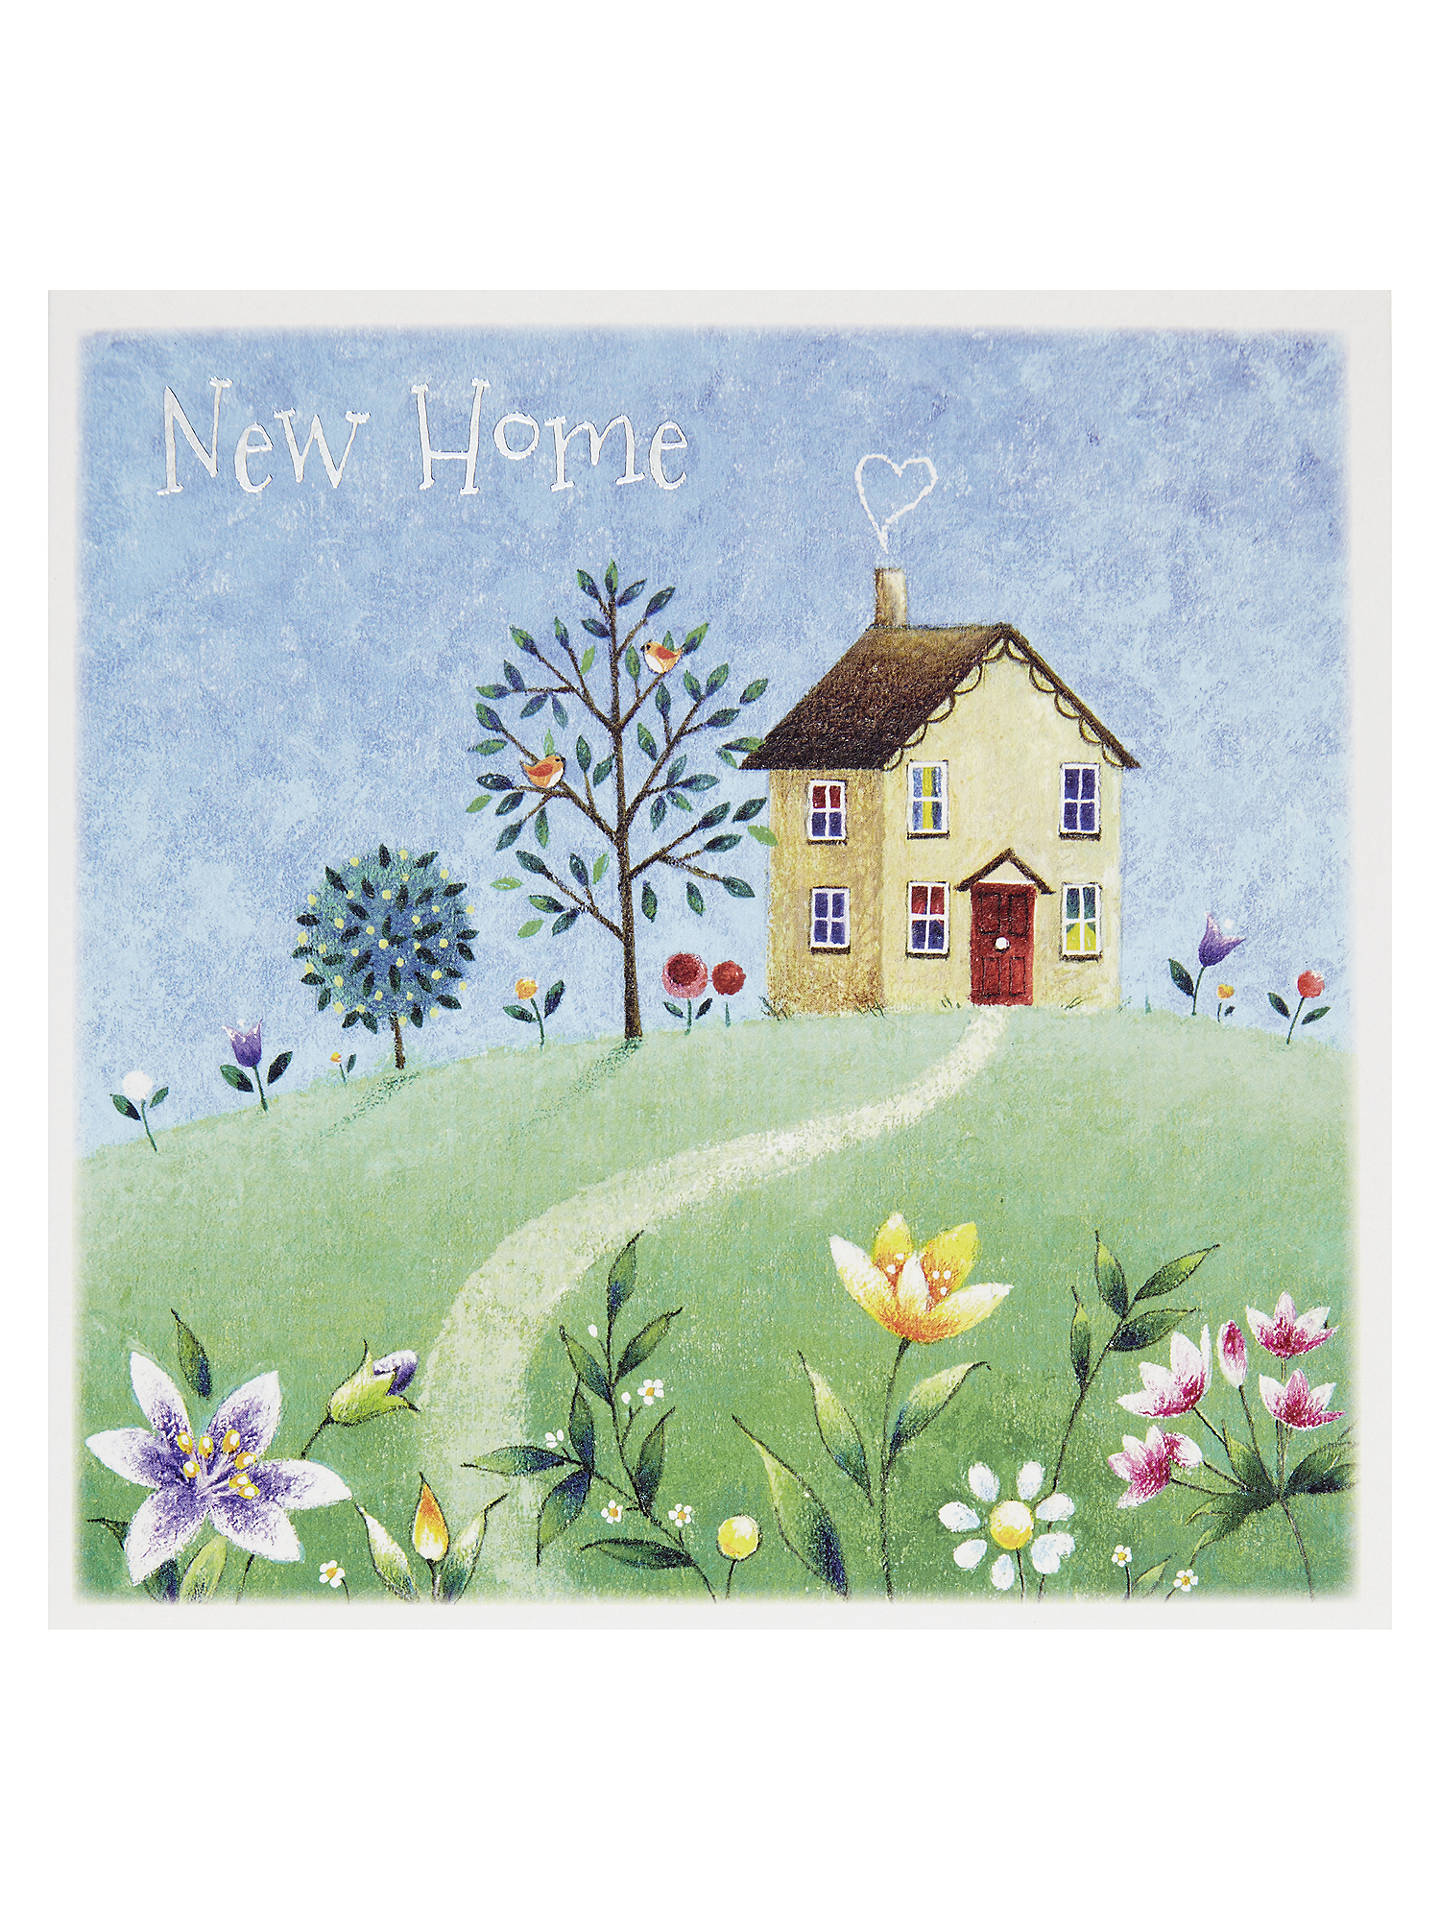 Mint happy new home greeting card at john lewis partners buymint happy new home greeting card online at johnlewis m4hsunfo